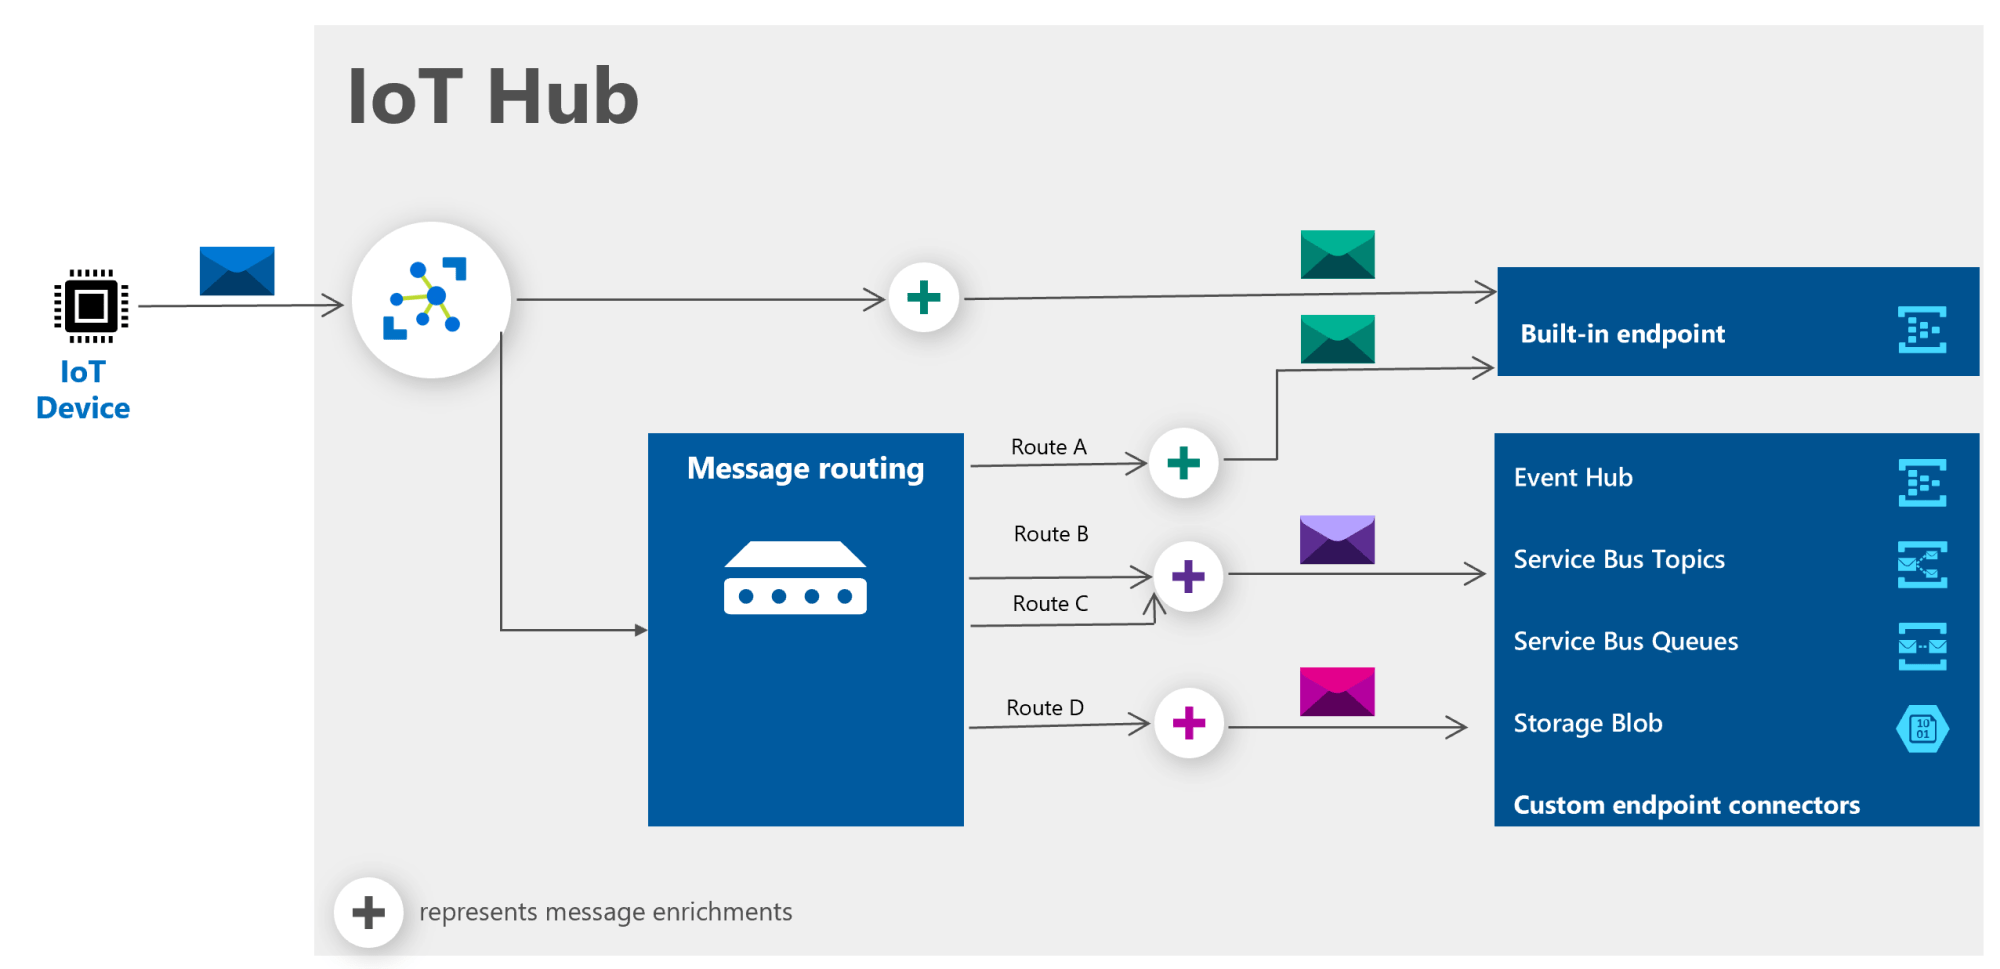 hight resolution of diagram of iot hub workflow and message routing